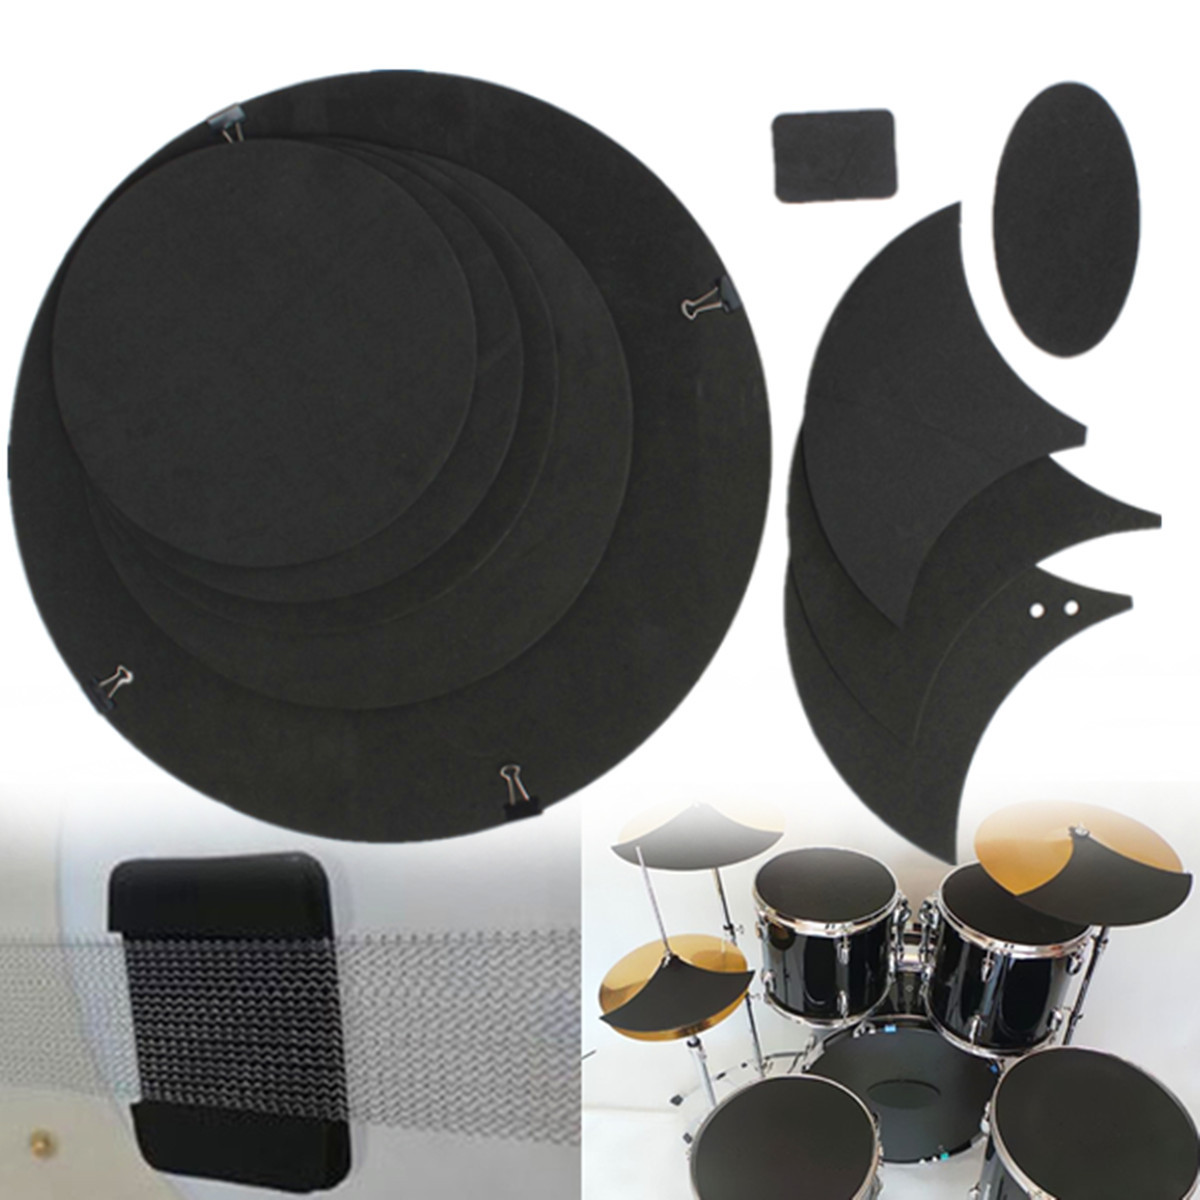 Grtsunsea 10Pcs Bass Snare Tom Sound off / Quiet Drum Mute Silencer Drumming Practice Pad Set Black